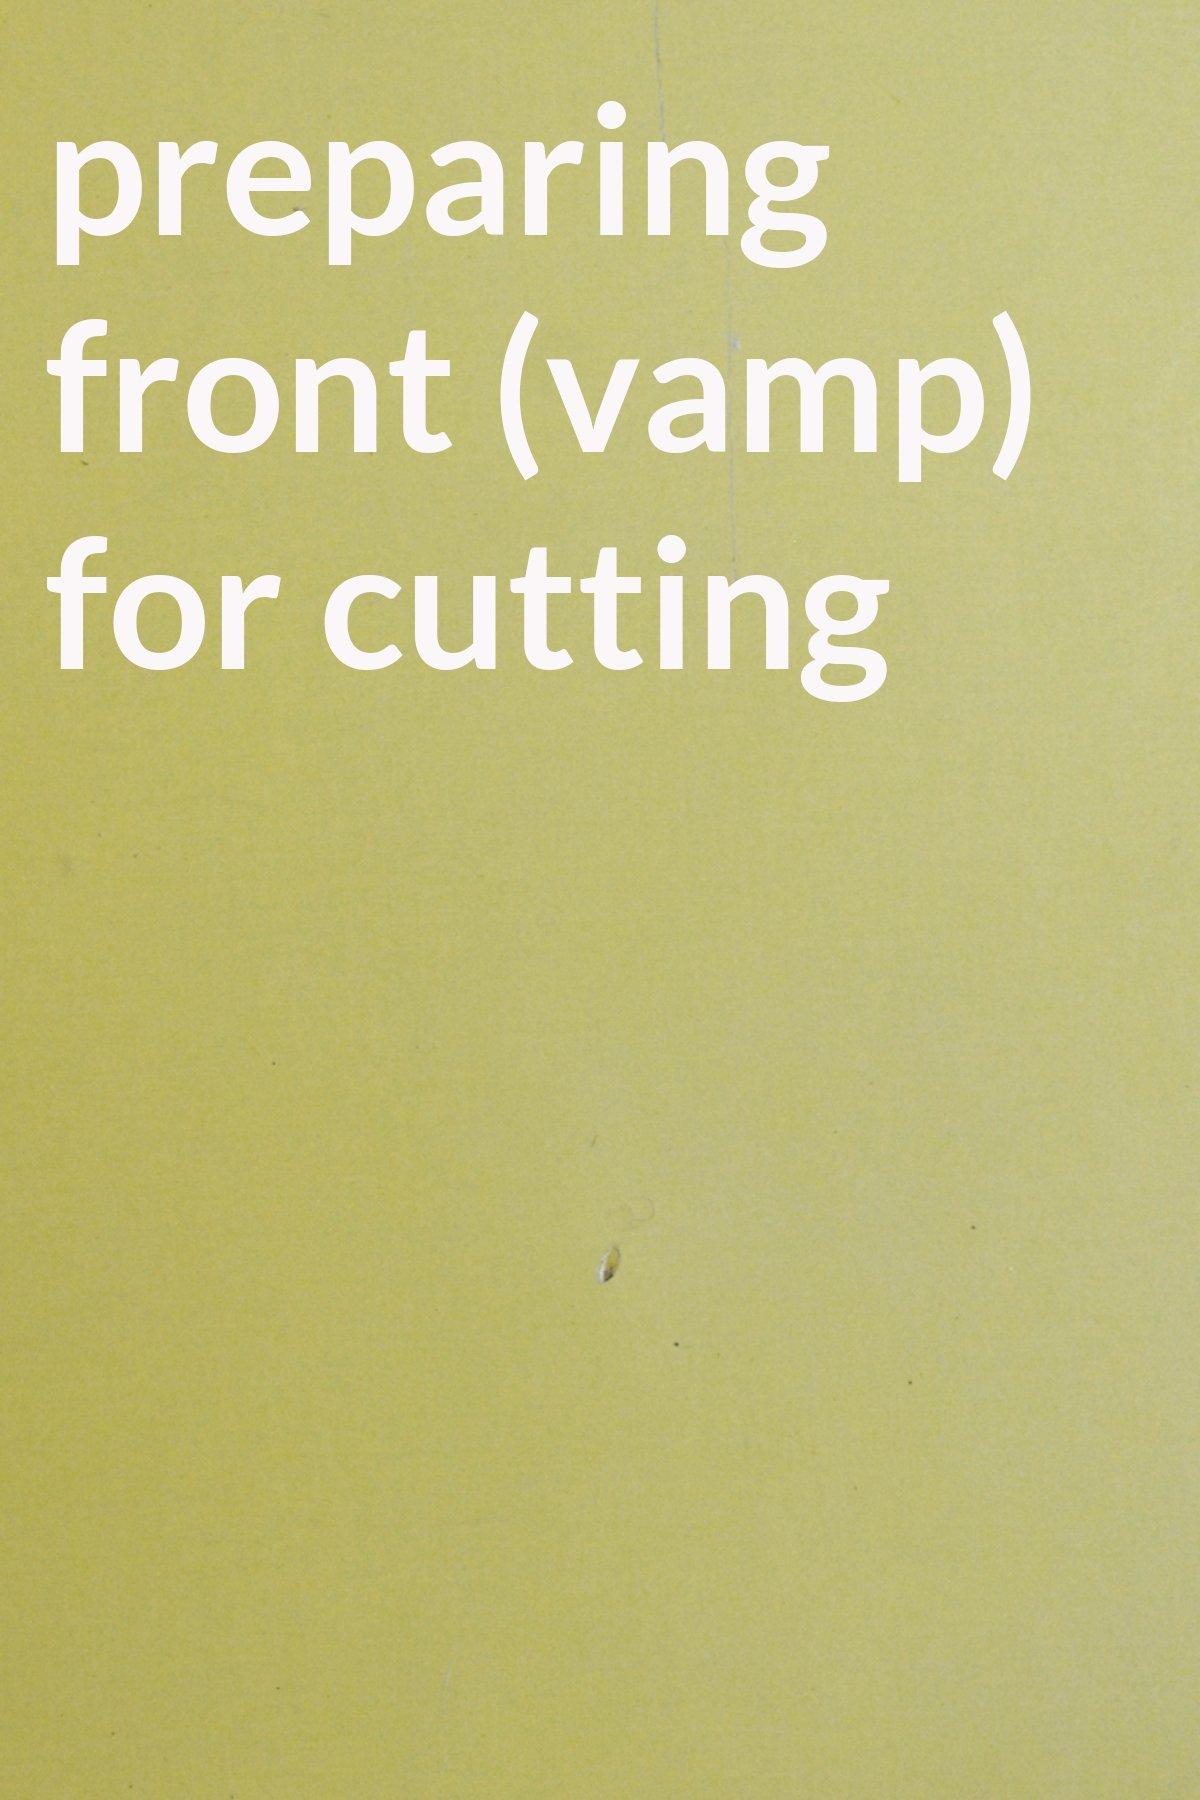 preparing front (vamp) for cutting